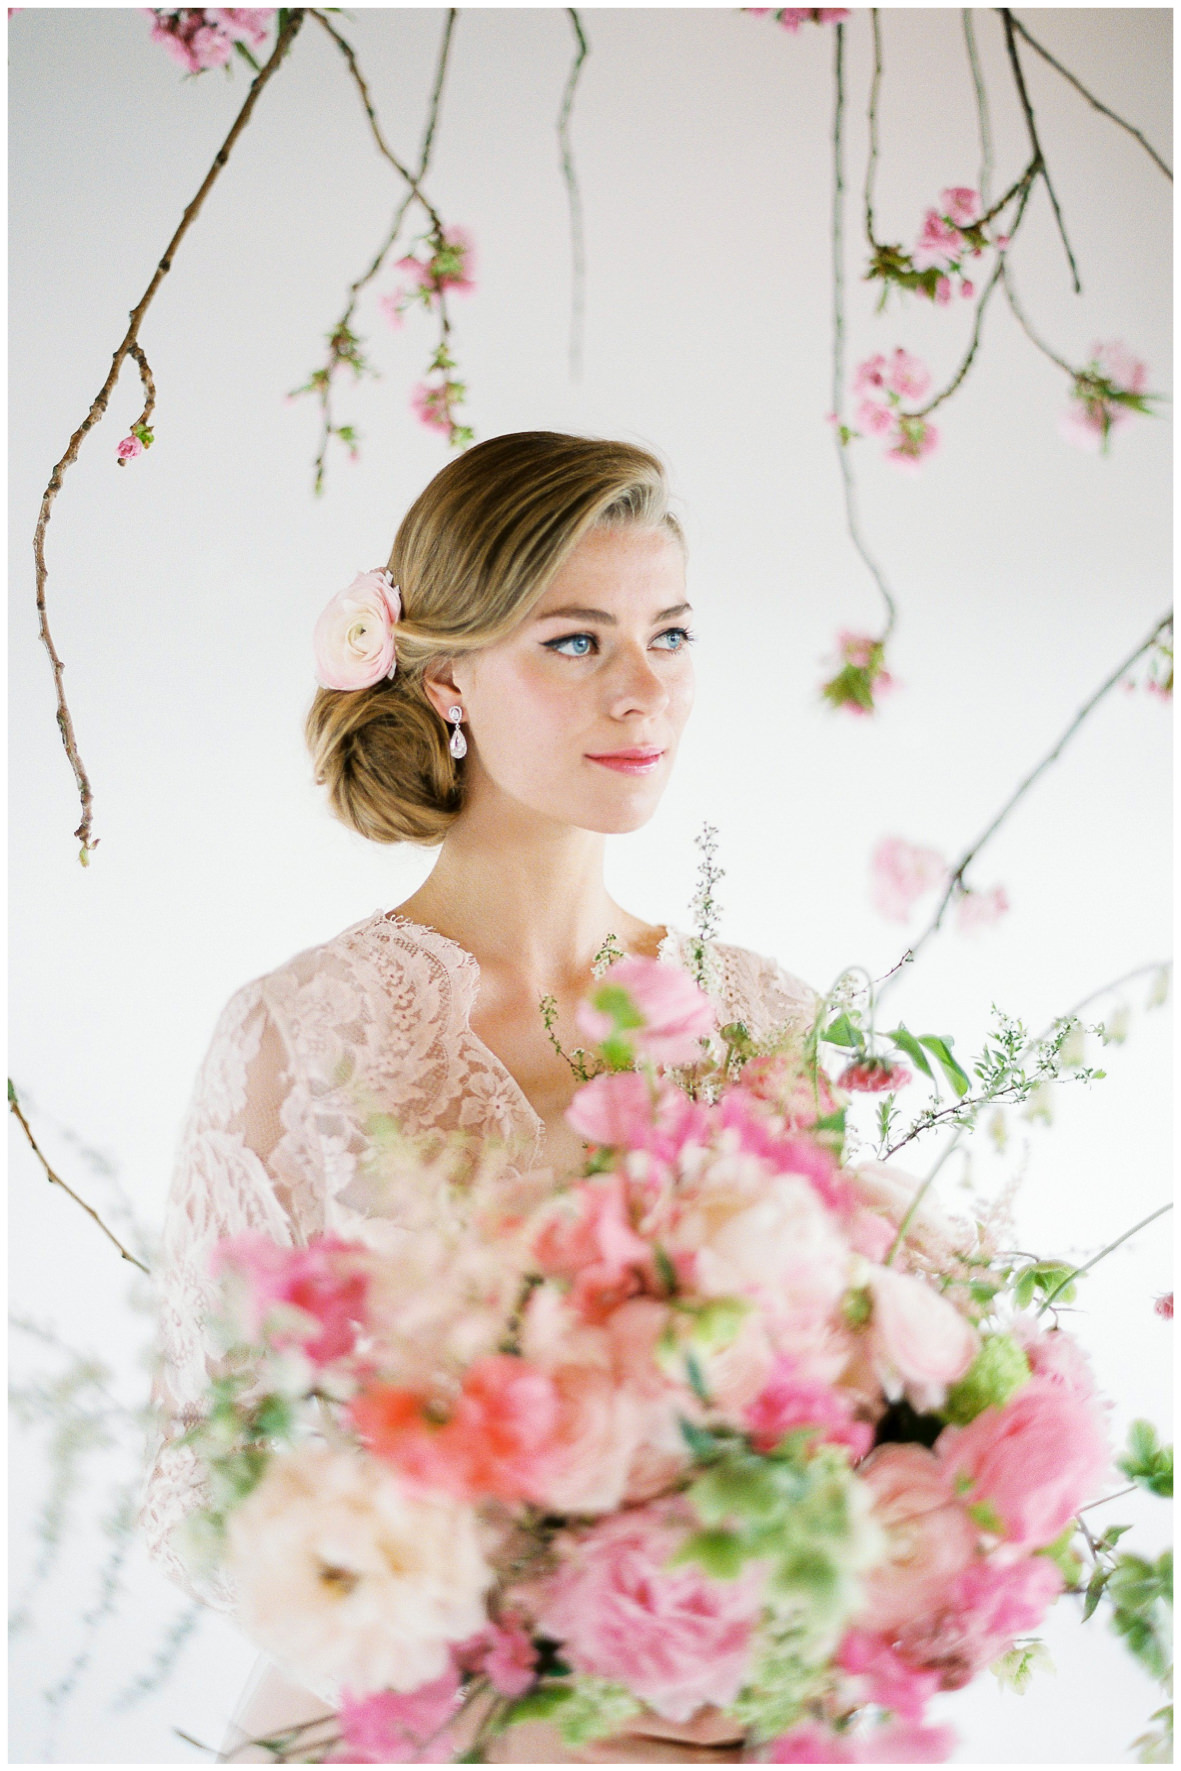 Lucy Davenport Photography, Loft Studios, Rebecca K Events, lace wedding gown, soft pink, suspended florals